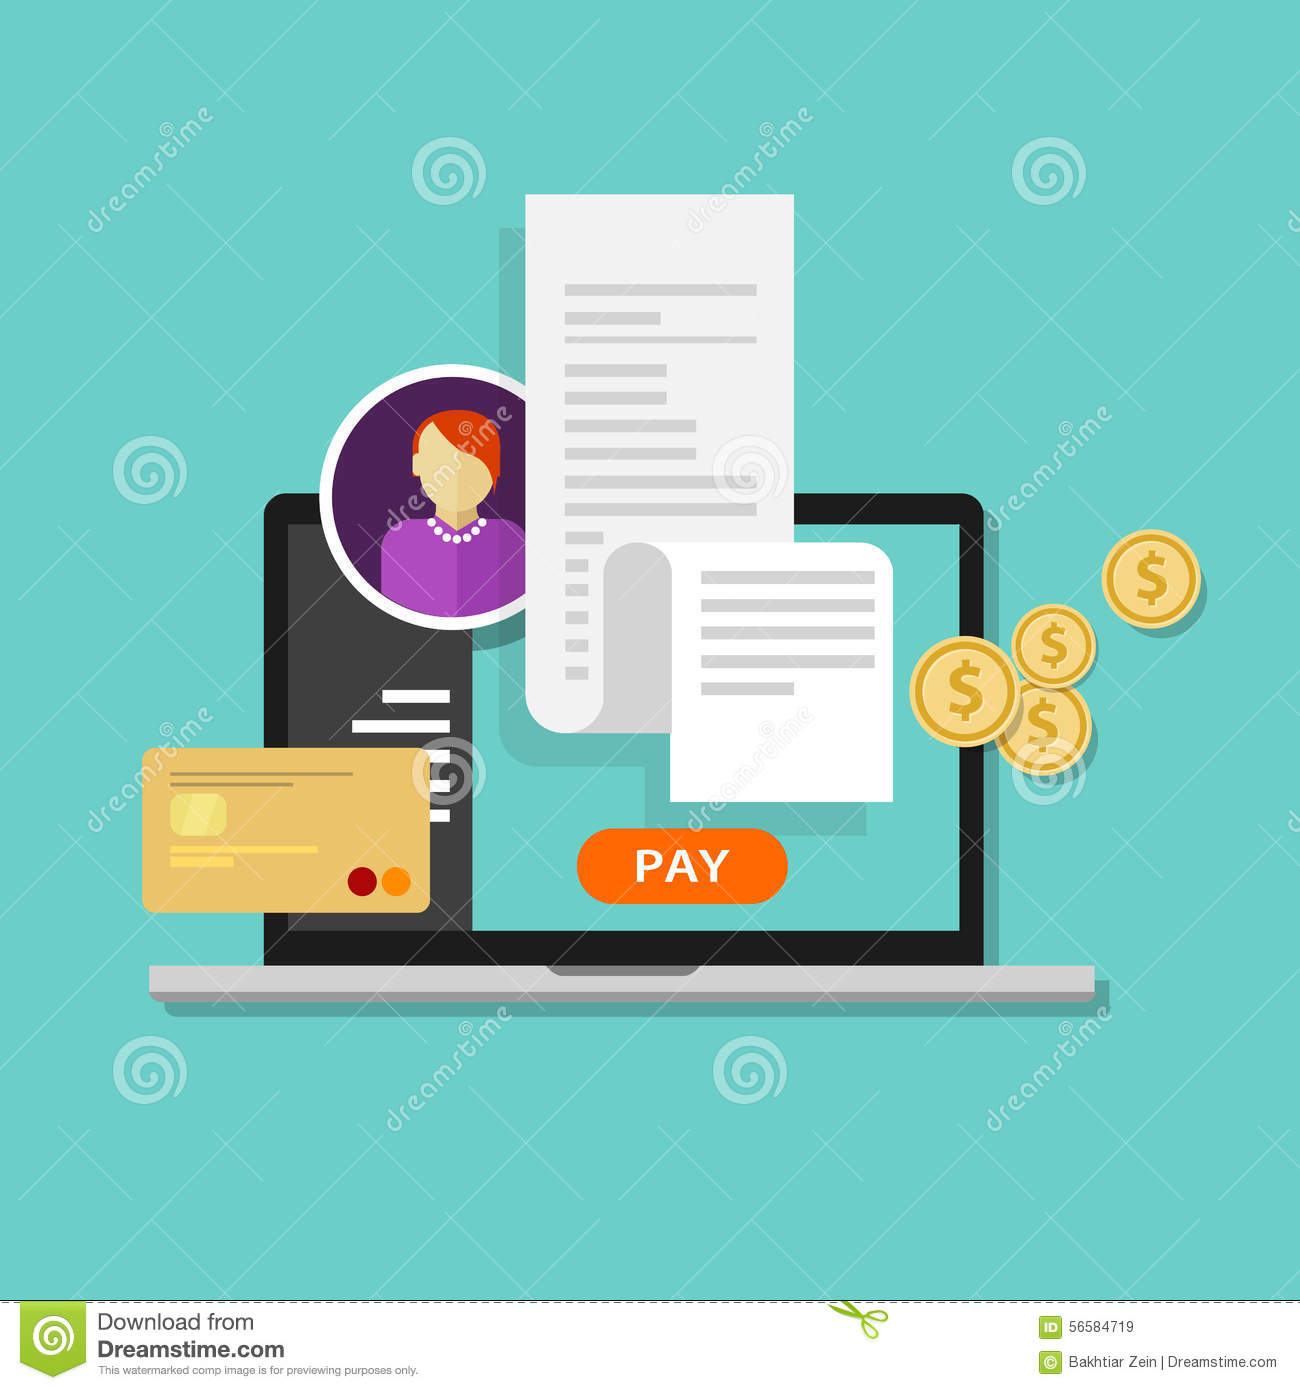 How To Pay A Credit Card Bill